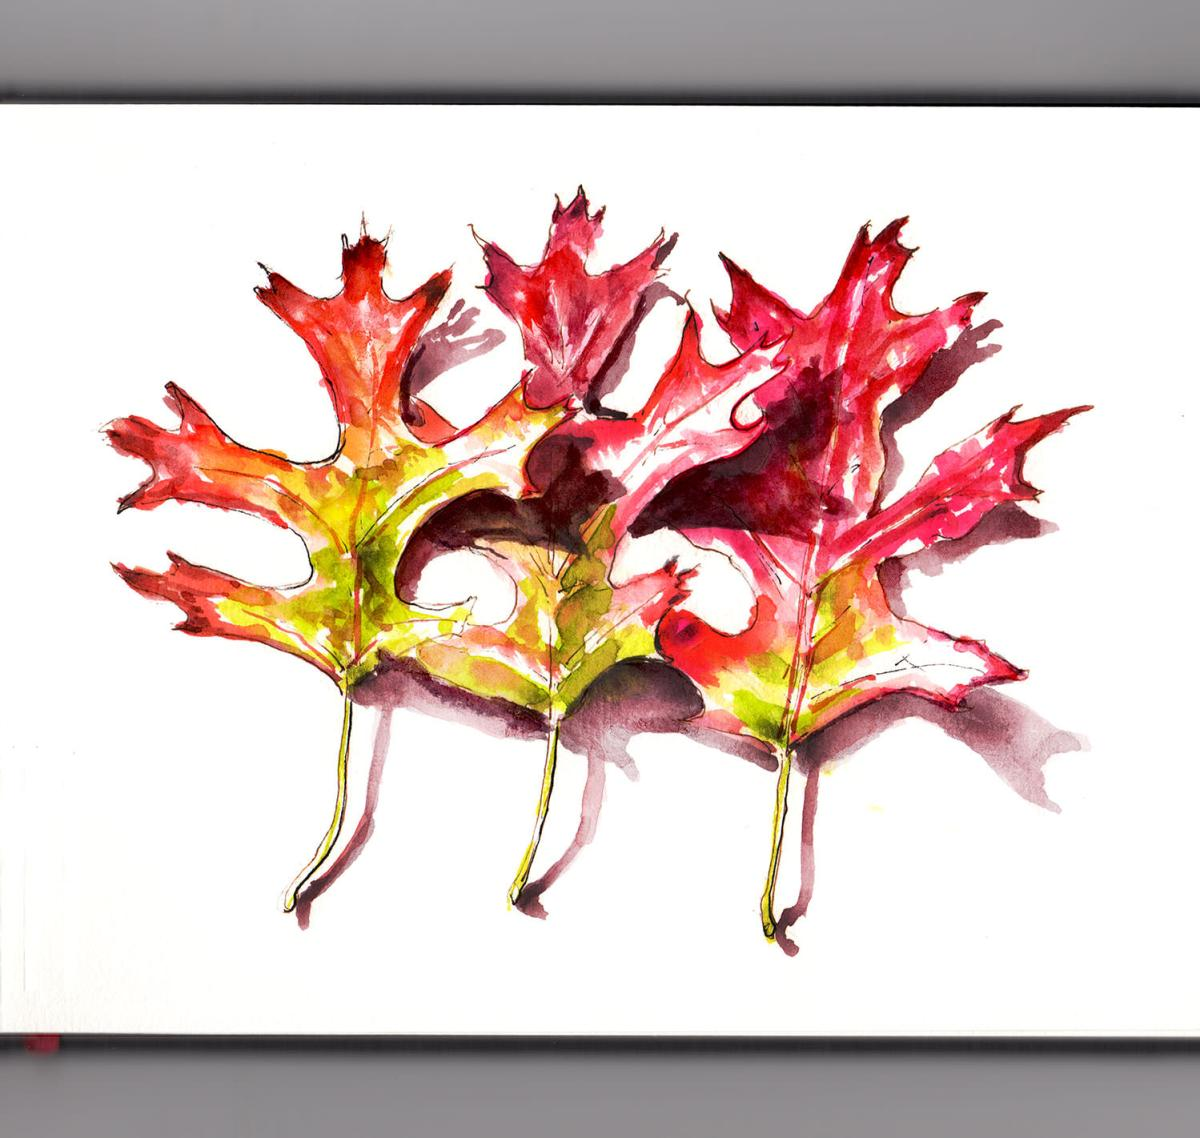 World Watercolor Group - Day 11 - My Favorite Weather - Autumn Leaves - Doodlewash